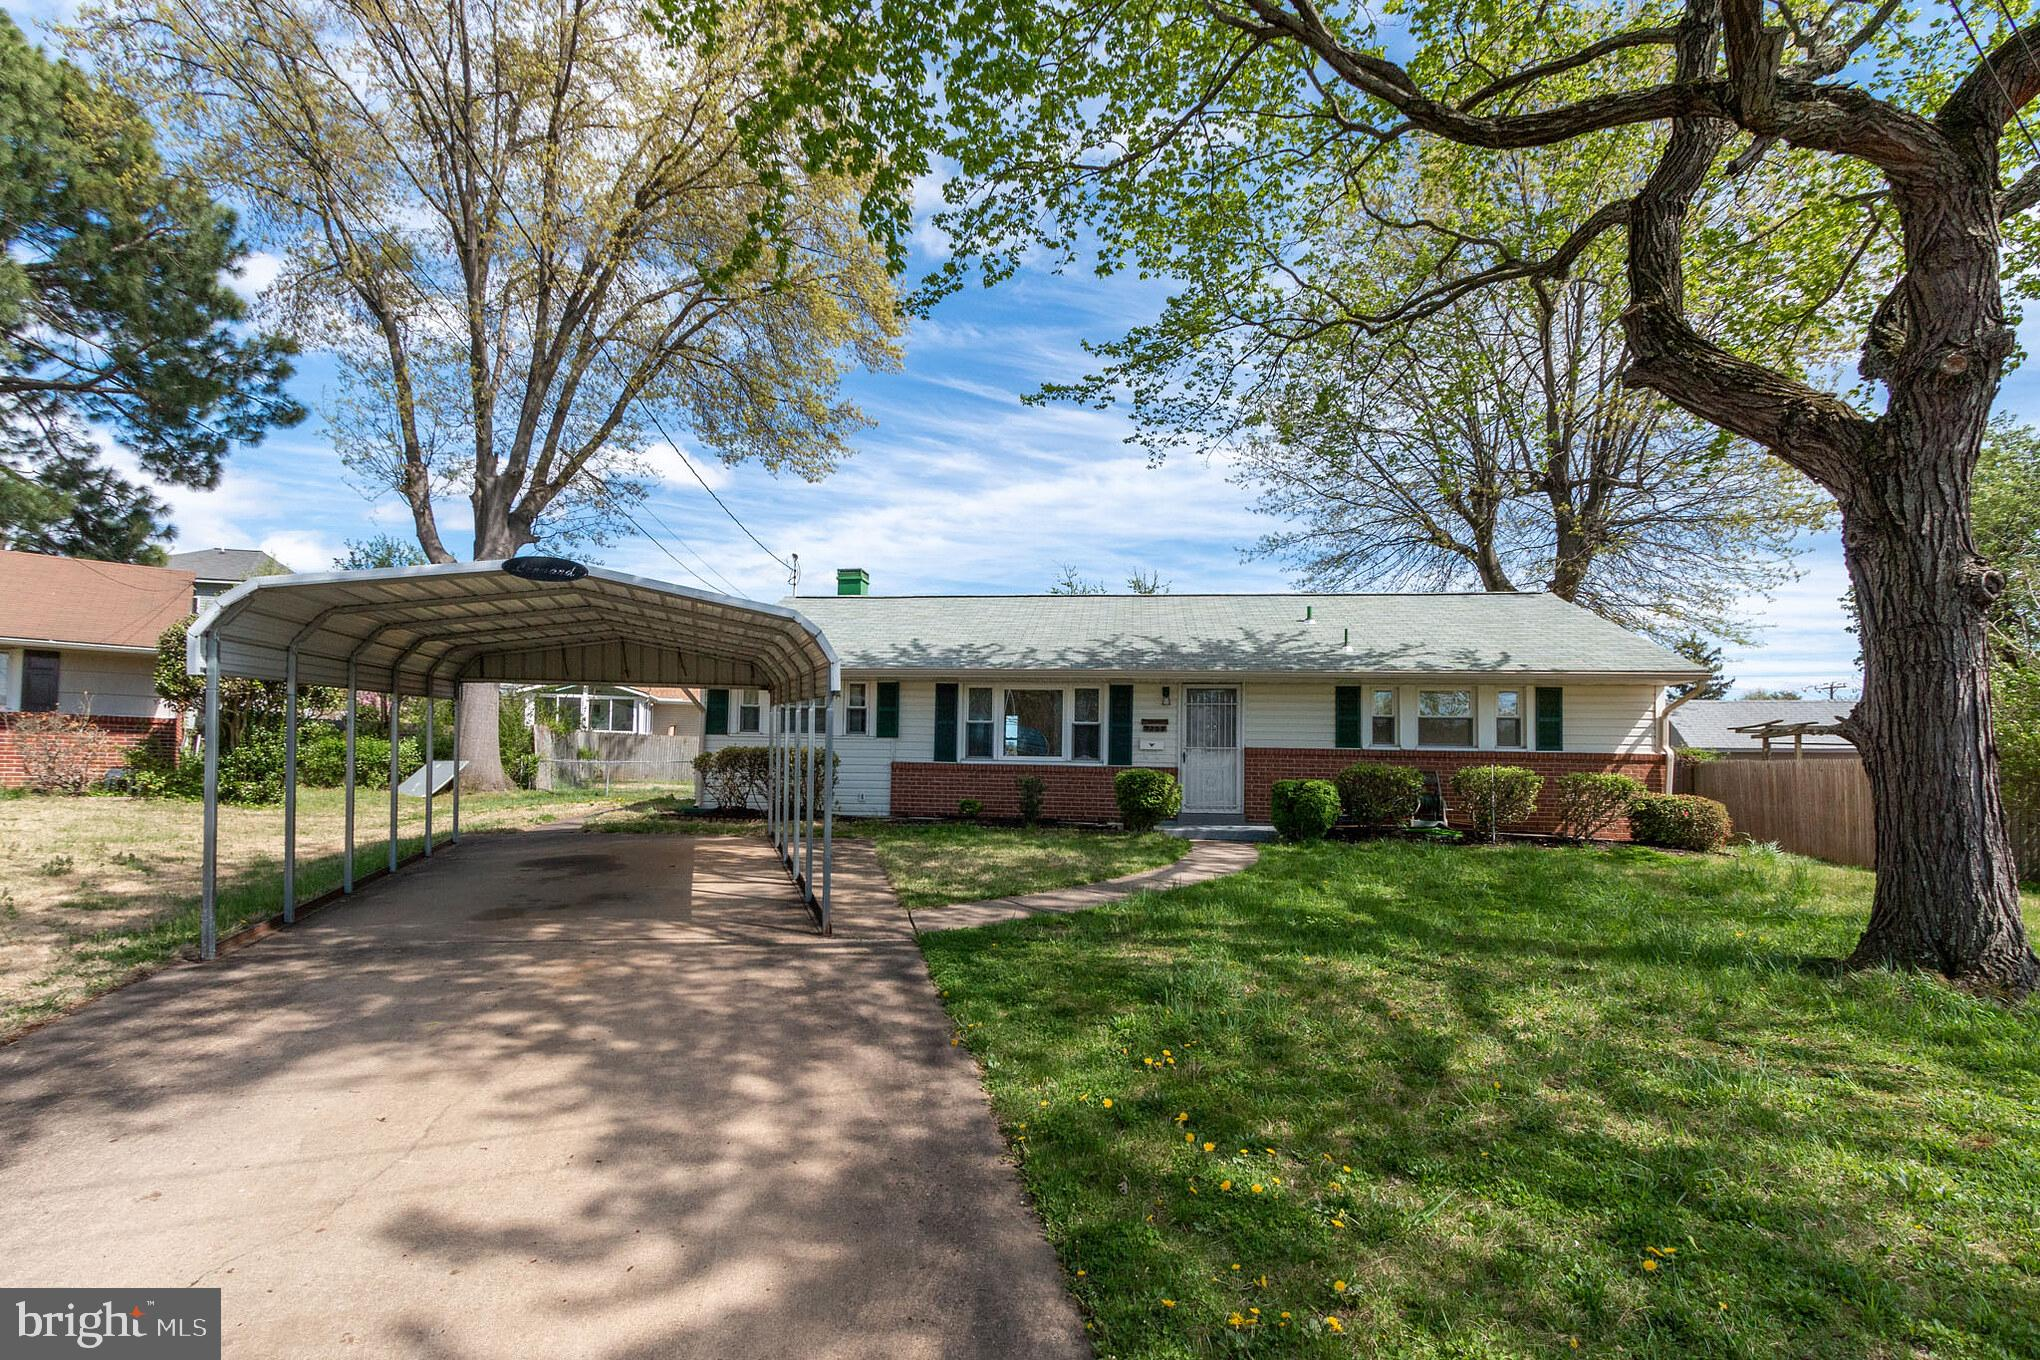 Charming renovated rambler in Hybla Valley! This lovely three-bedroom home sits at the end of a quiet, tree-lined cul-de-sac, yet is close to everything. The house features new hardwood floors and wall-to-wall carpet. The kitchen has been recently updated, with stainless steel appliances and granite countertops. An adjacent dining area includes a ceiling fan, with a window that looks out on a sizeable, fenced-in back yard. Other updates to the home include a new 50-gallon water heater, new HVAC system, and new roof. Close to several dining and shopping options, with easy access to Rt. 1, the Beltway, Old Town Alexandria, Reagan National Airport, and more.